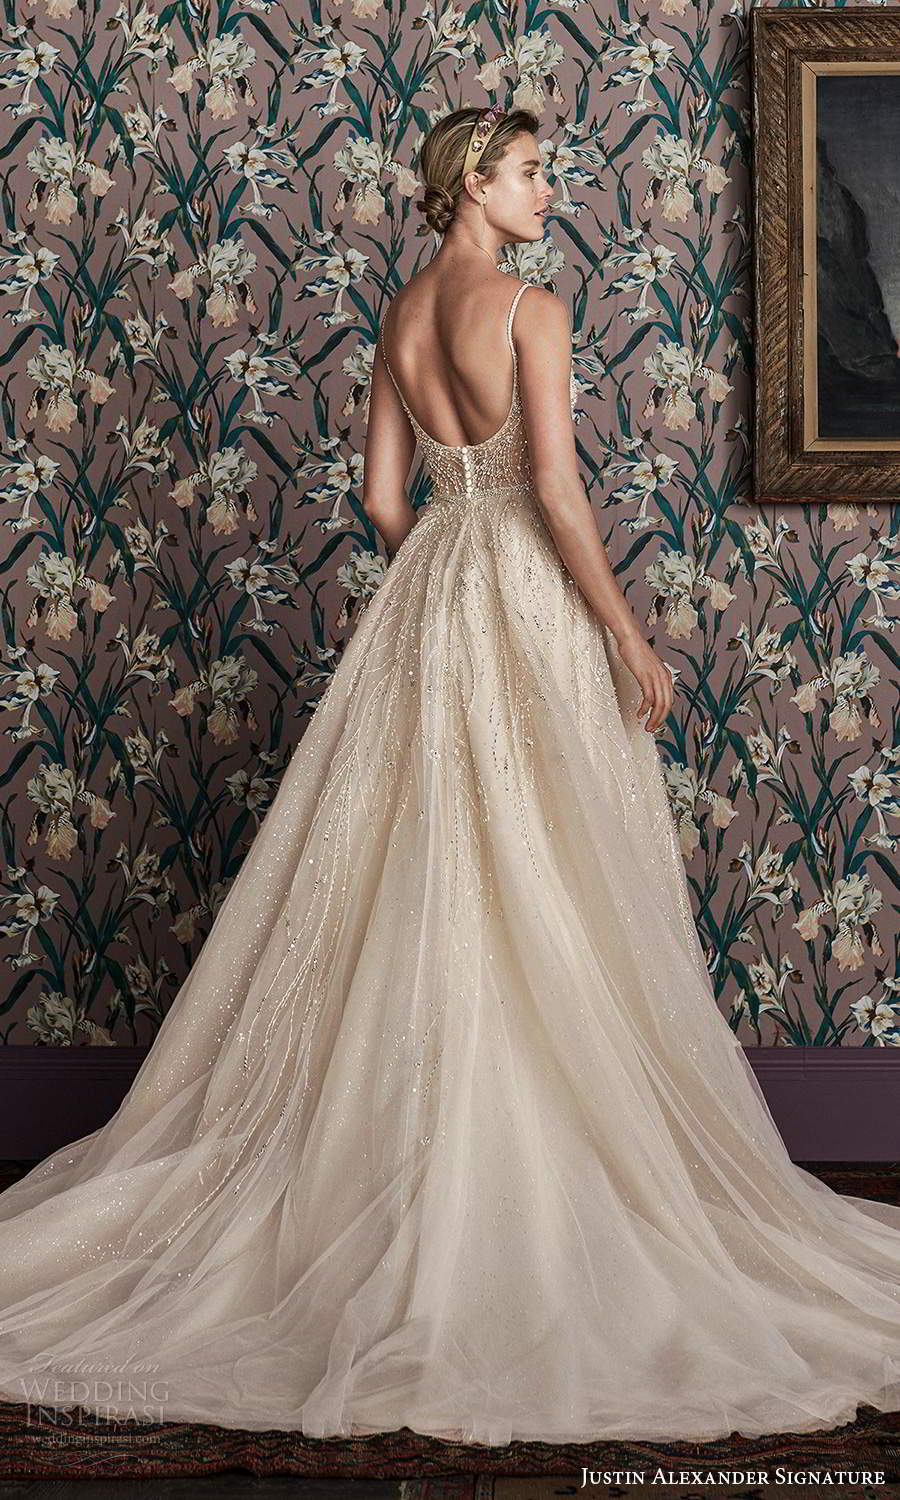 justin alexander spring 2021 bridal sleeveless thin straps v neckline fully embellished a line ball gown wedding dress scoop back chapel train (2) bv